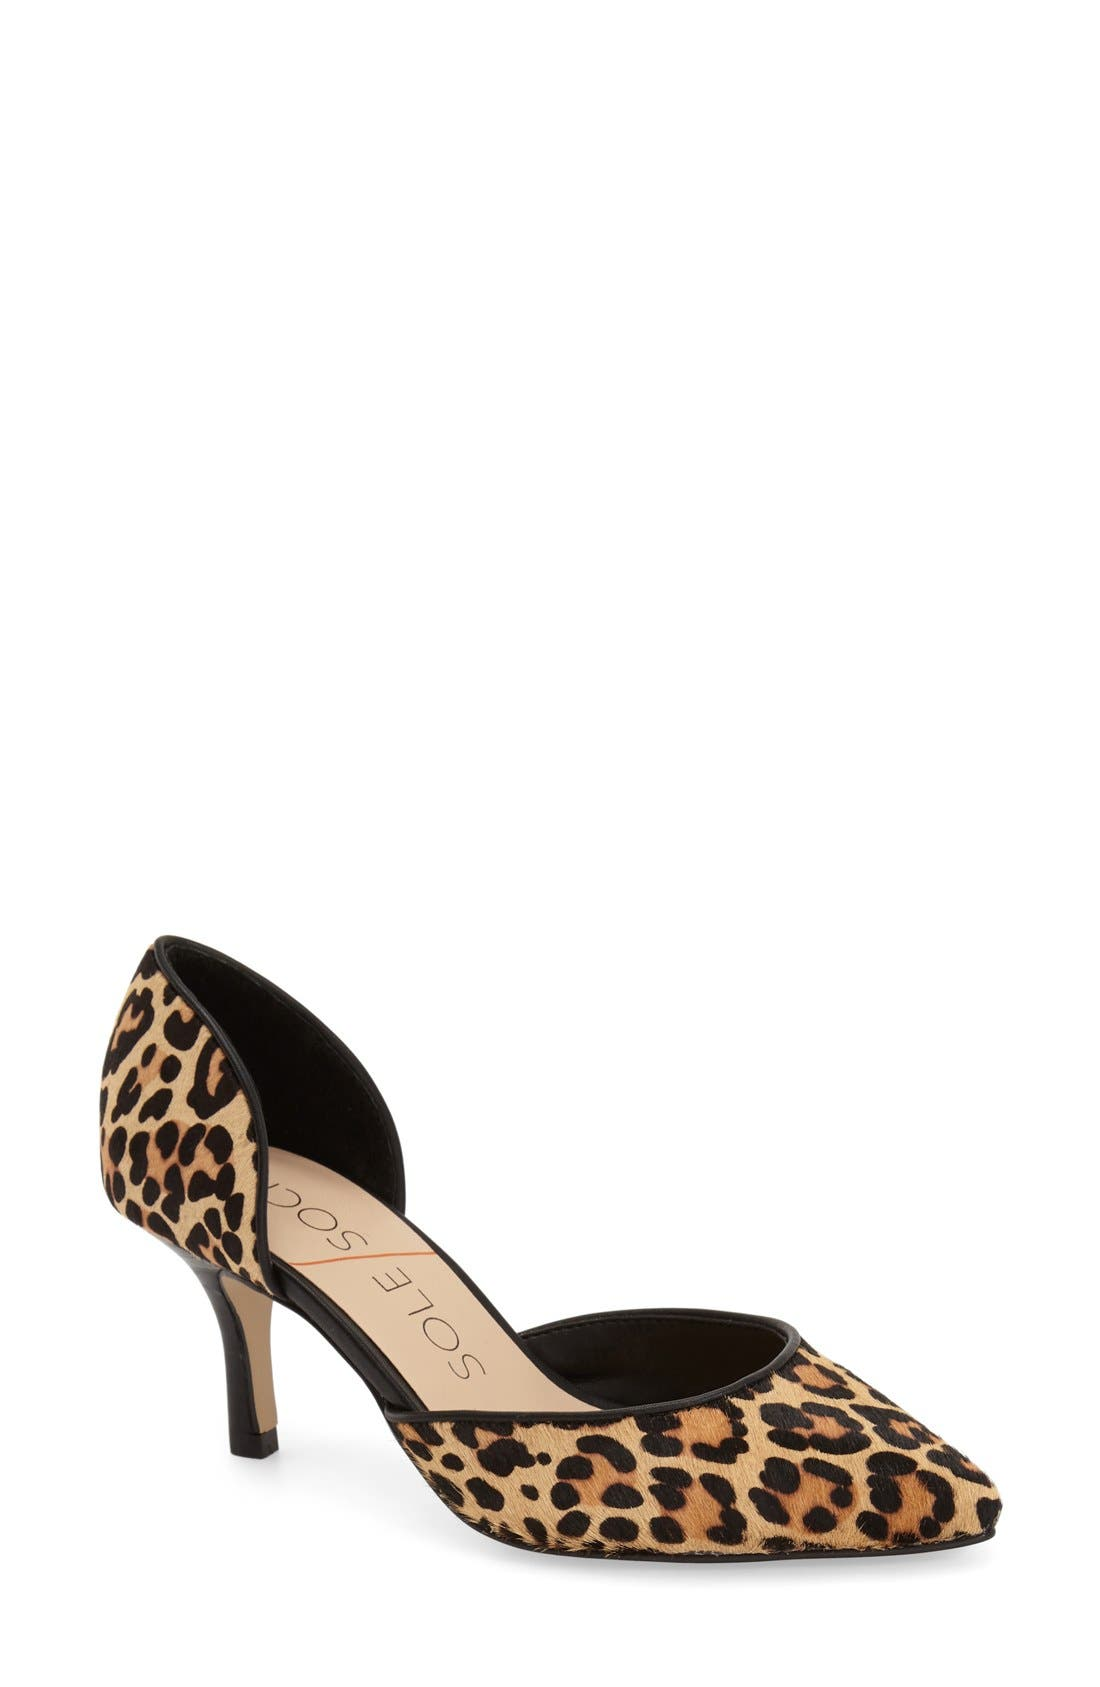 Main Image - Sole Society 'Reymina' Genuine Calf Hair d'Orsay Pointy Toe Pump (Women)